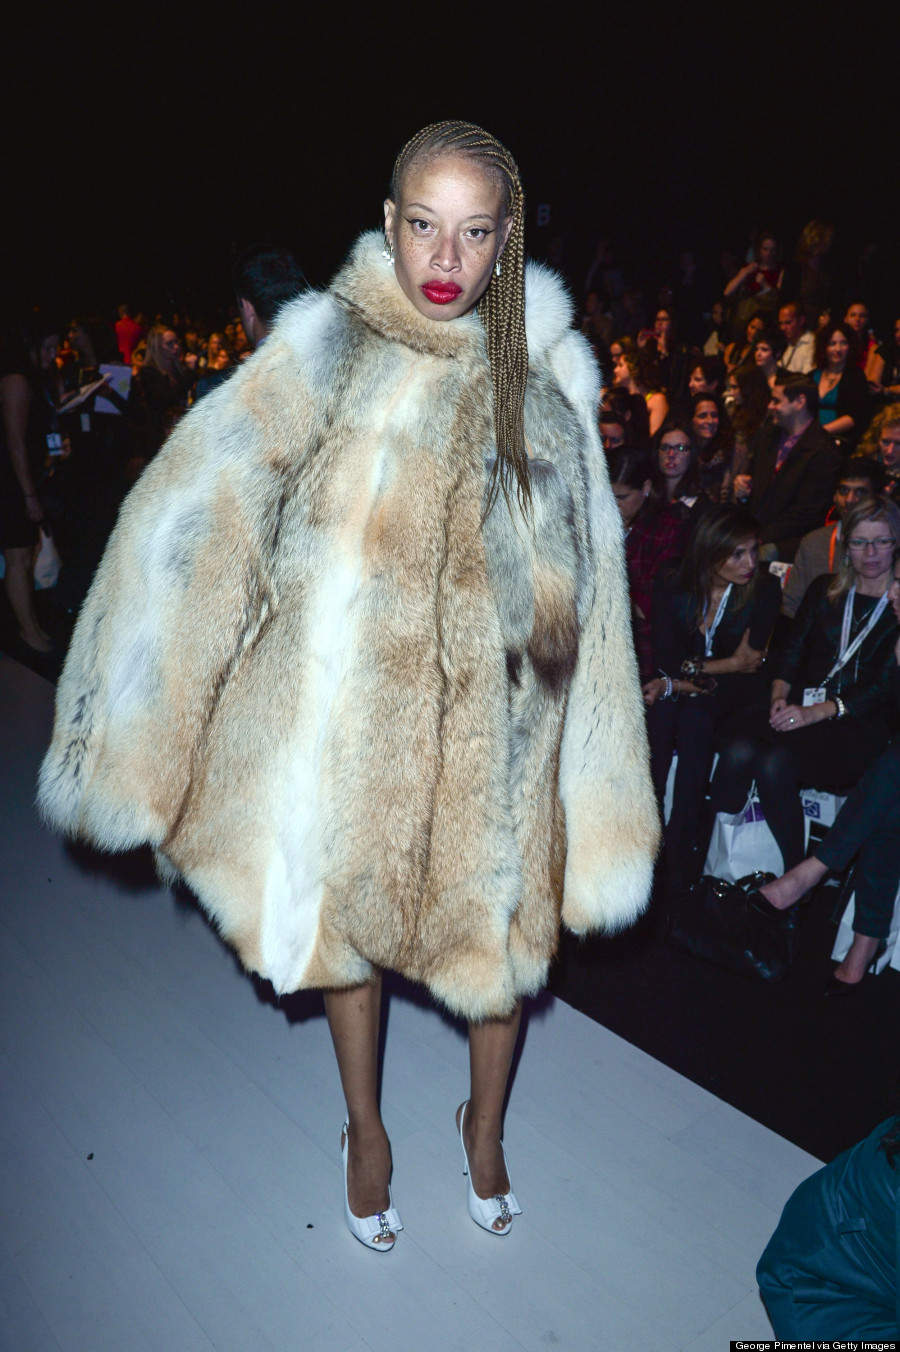 stacey mckenzie toronto fashion week